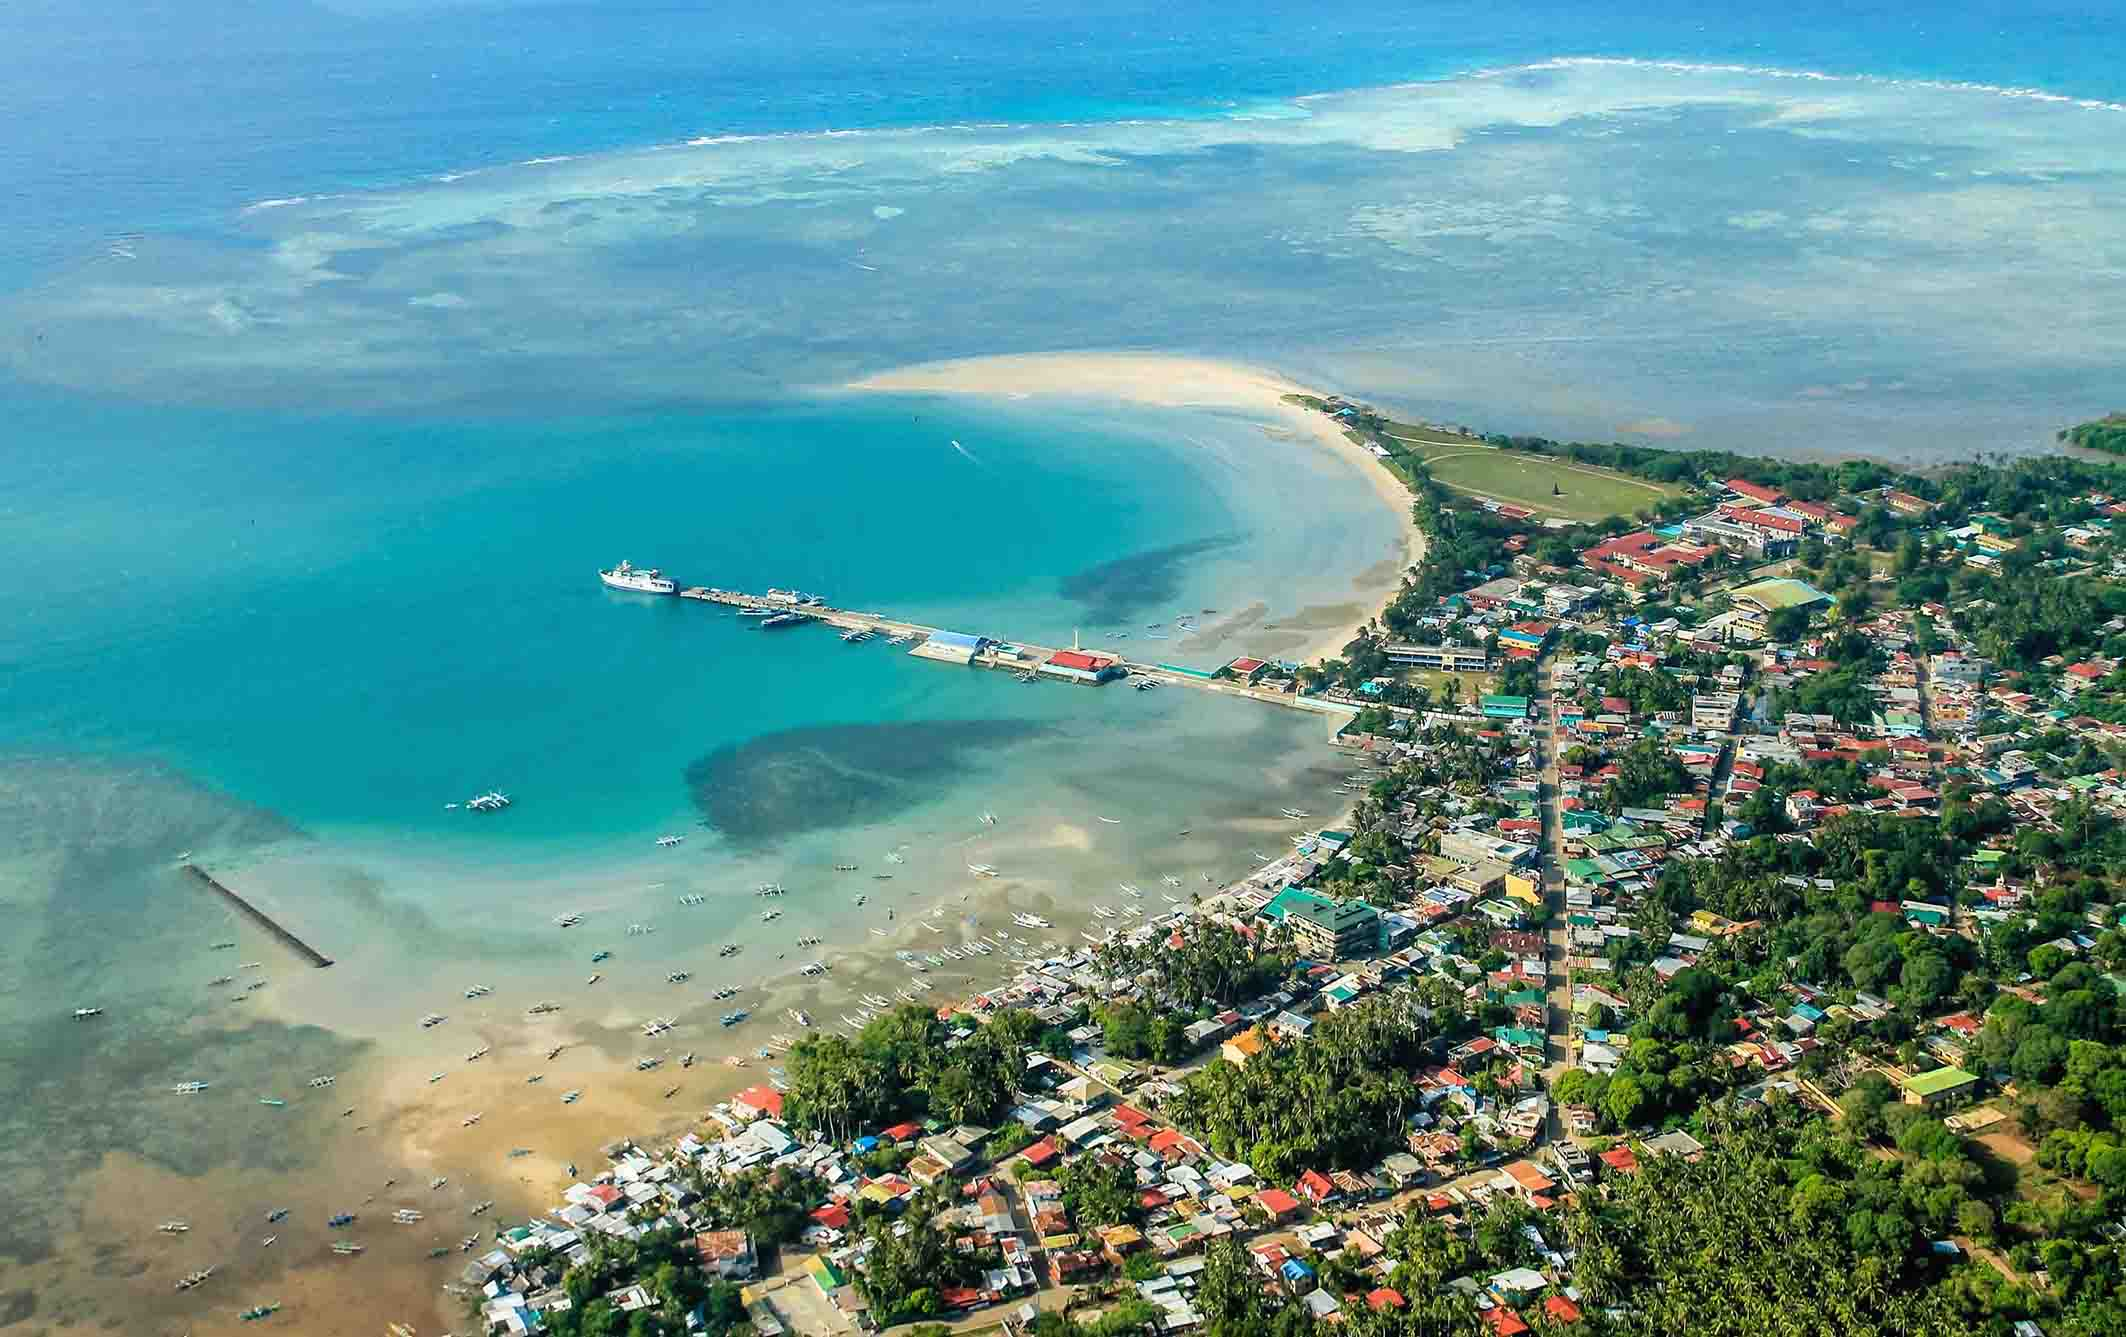 Cuyo Town and Capusan Beach Sandbar